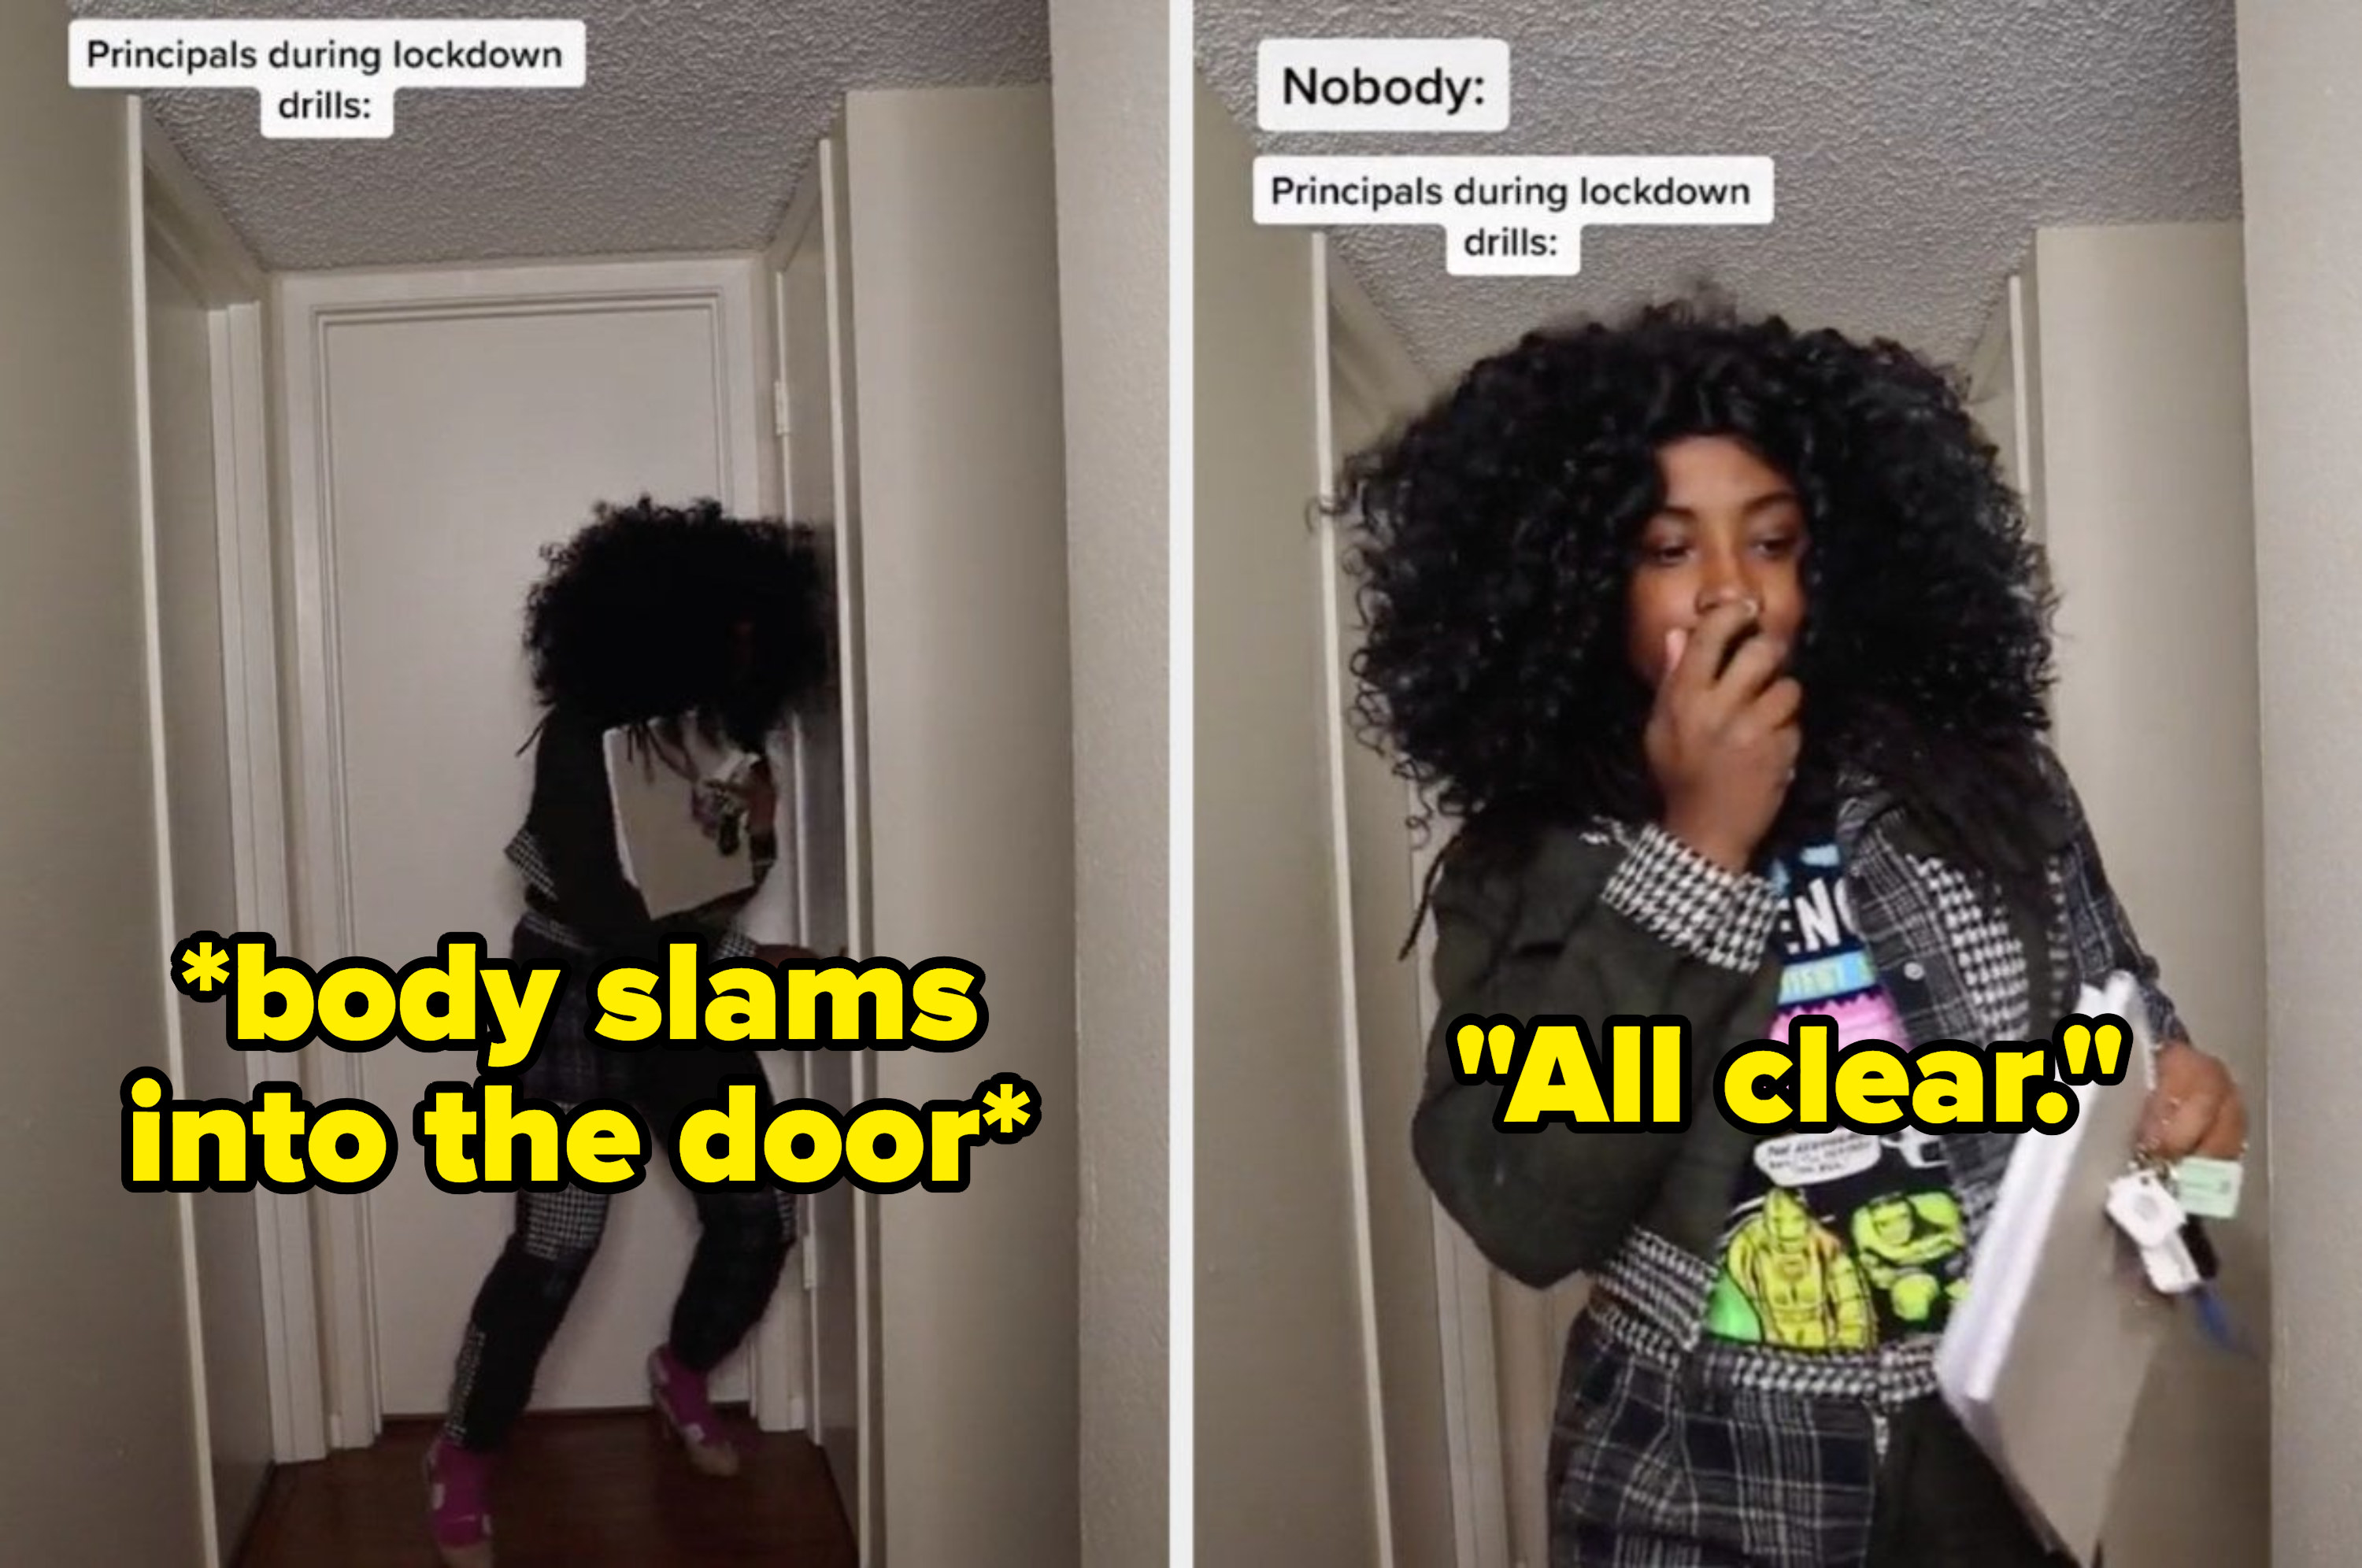 """A TikToker pretends to be a principal with the caption """"body slams into the door"""" then says """"All clear"""""""